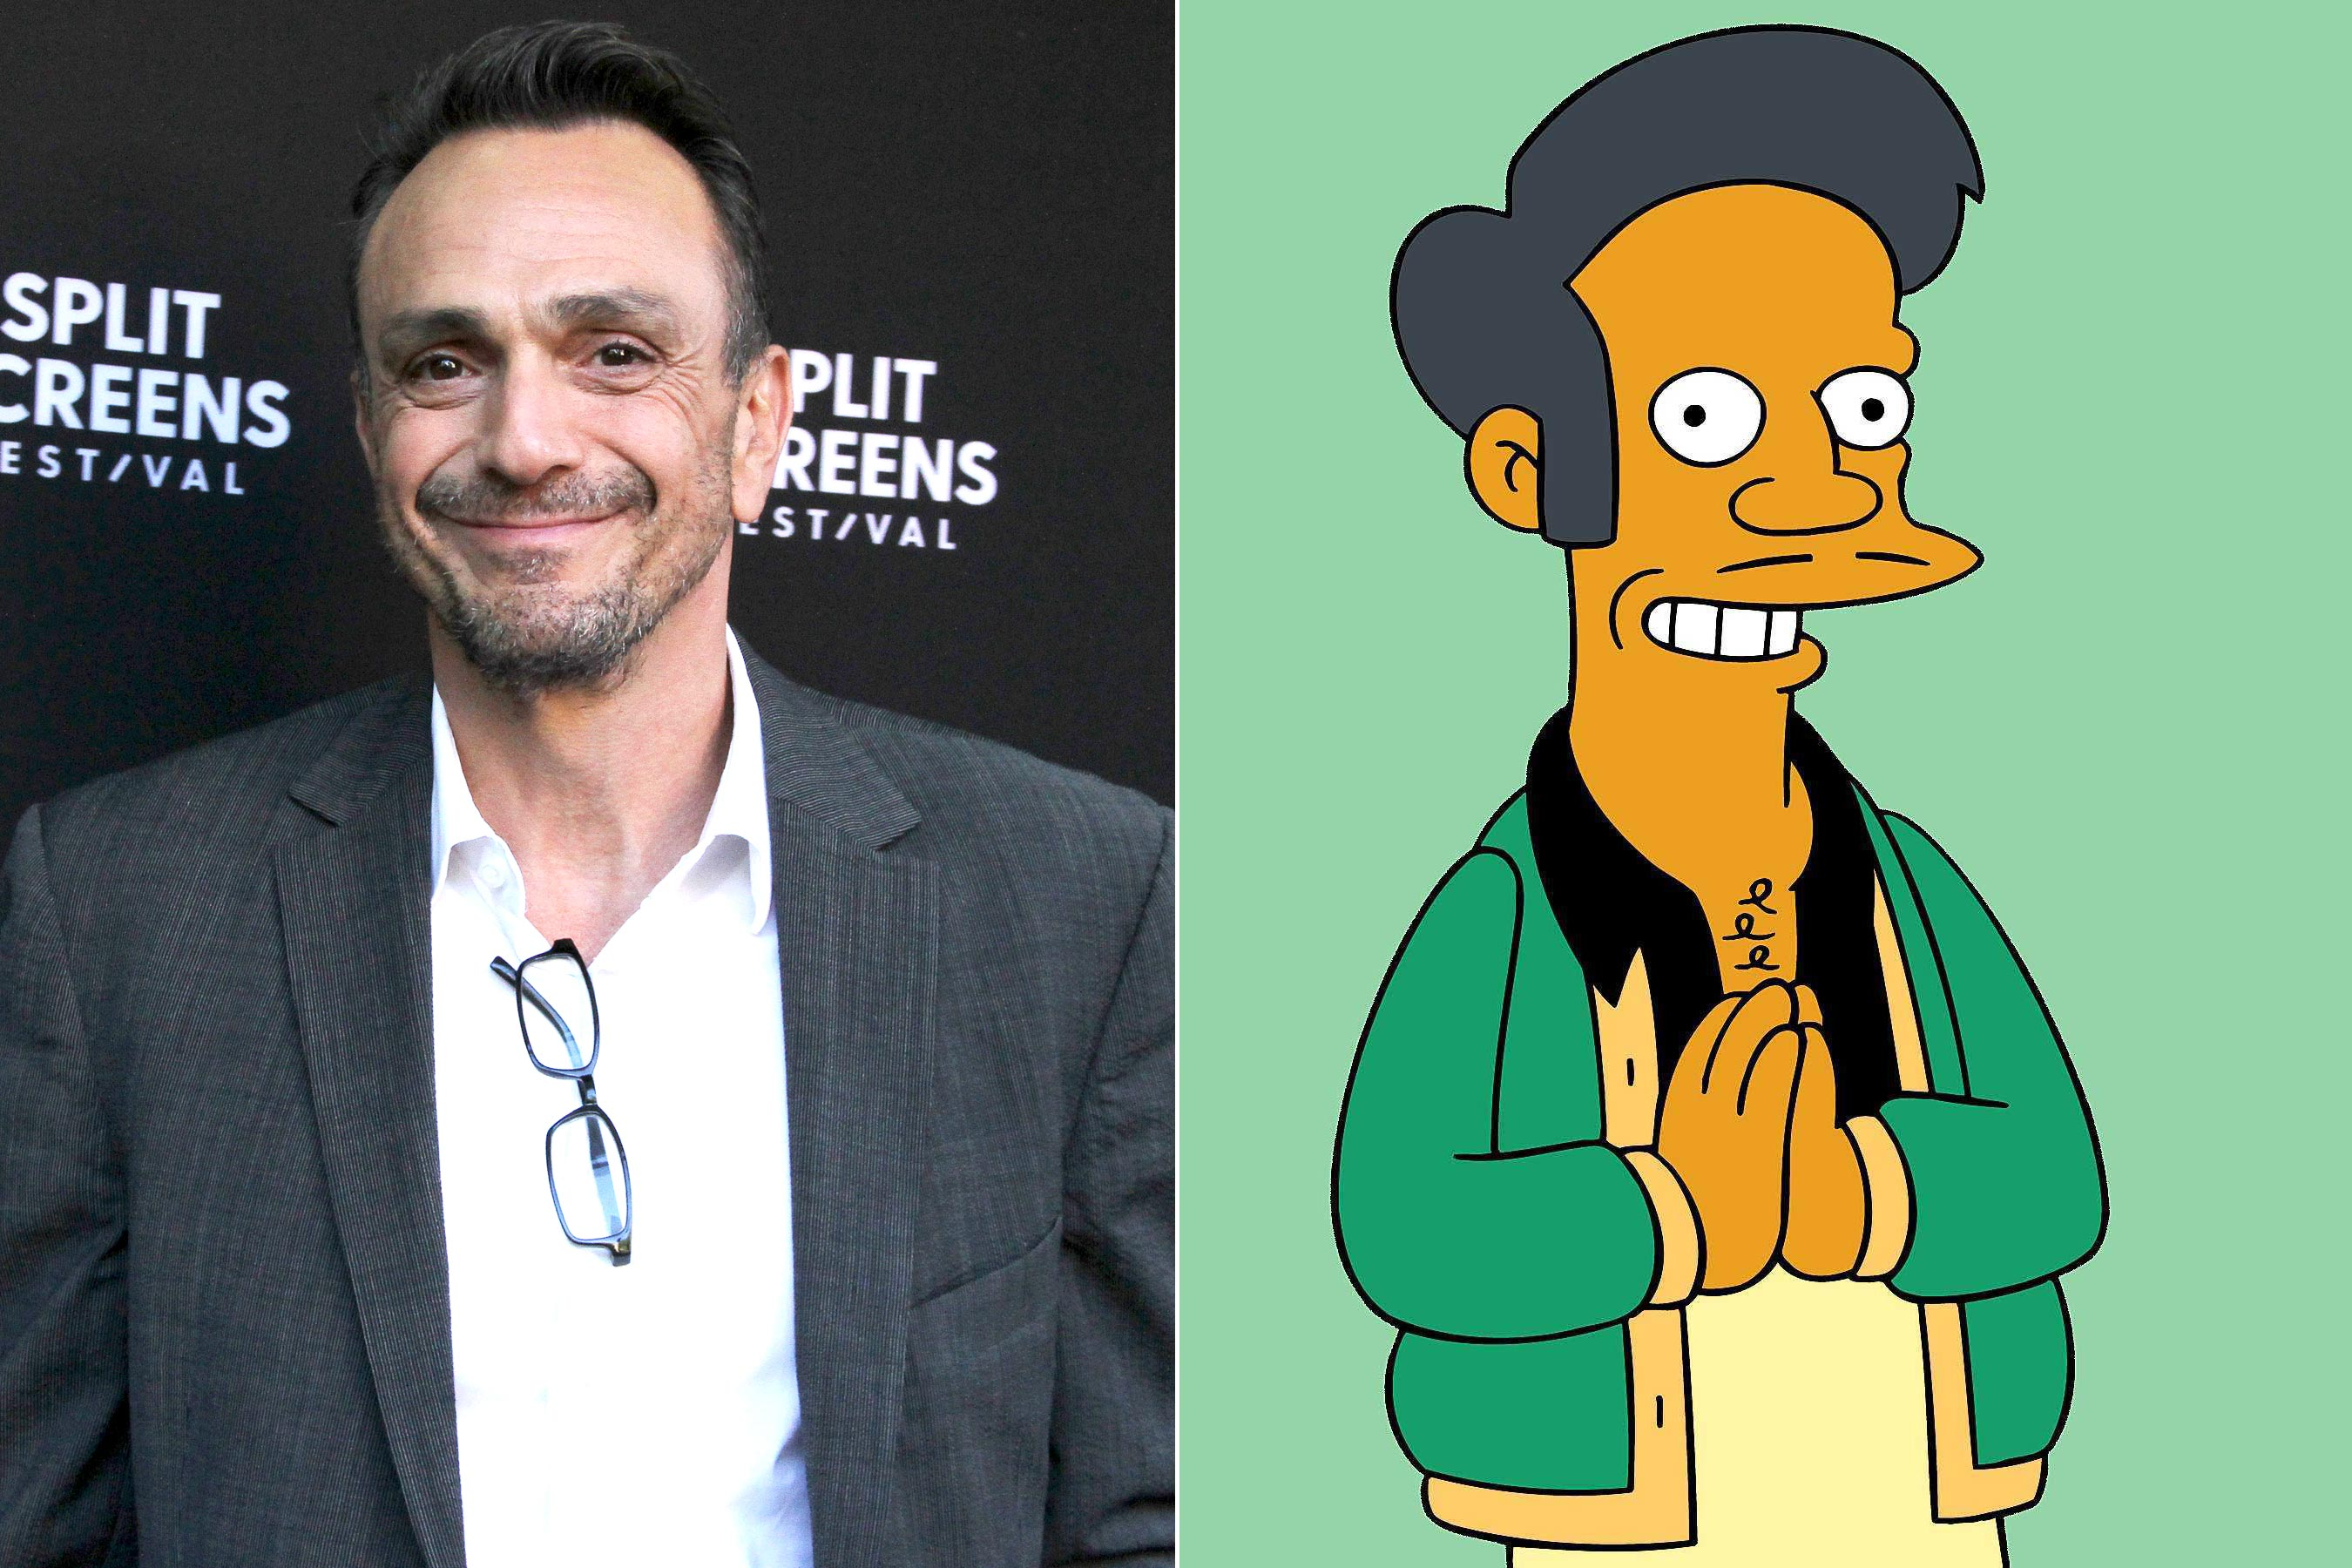 Simpsons: Hank Azaria says show will address Apu in wake of documentary